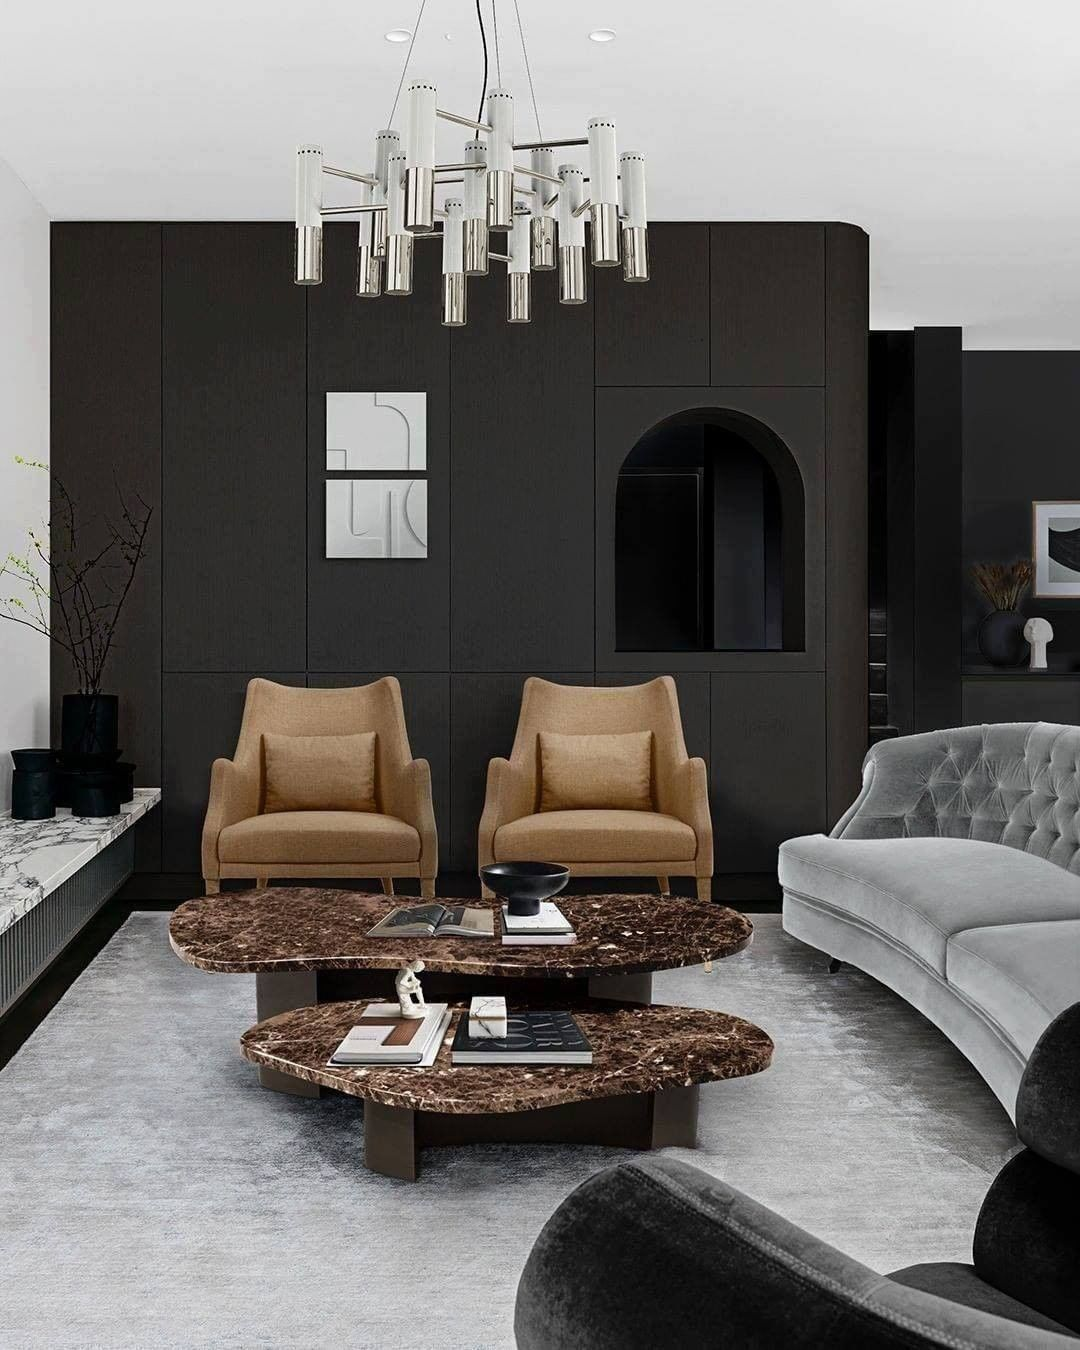 Interior Design Trends 32 Luxury Minimal Design Is Here To Stay ...